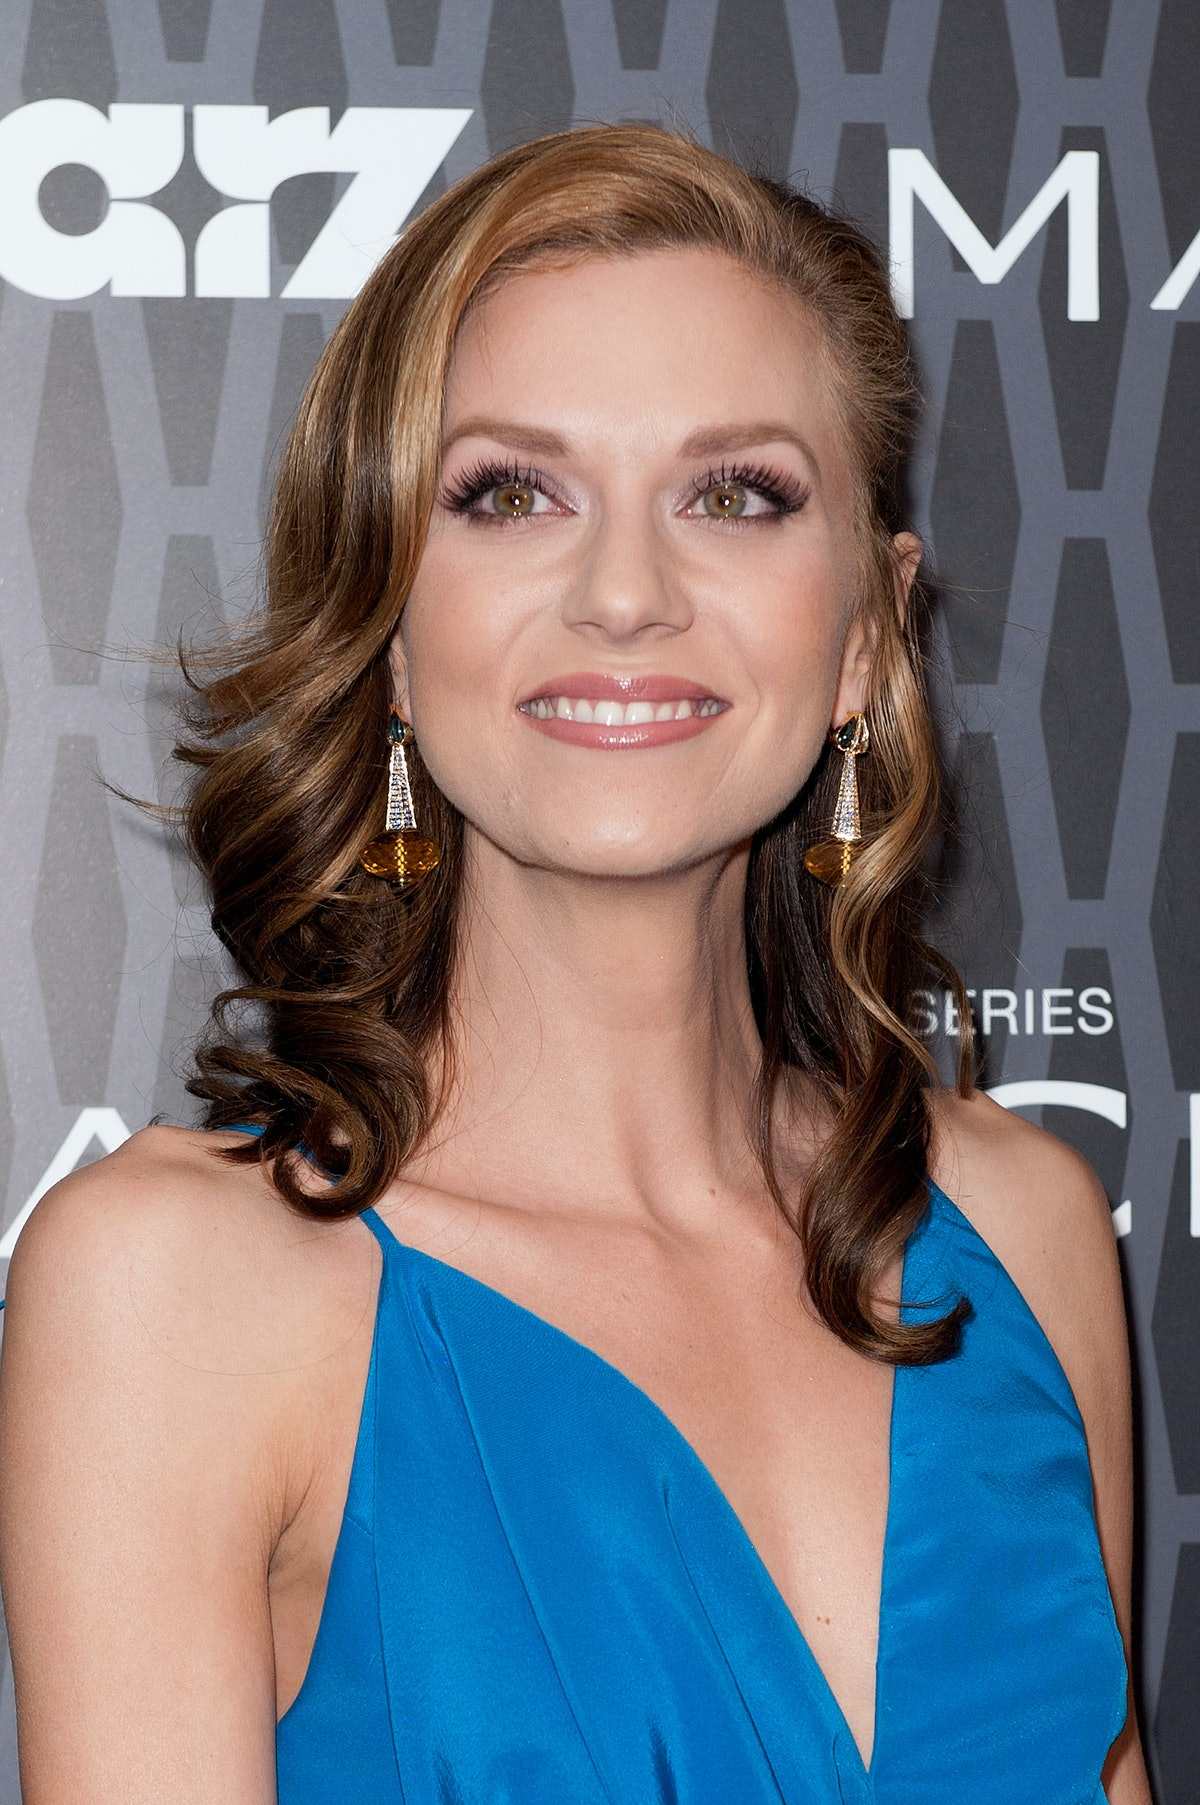 Hilarie Burton's Comments About 'One Tree Hill' Sexualizing Teens Bring Up Such A Valid Point